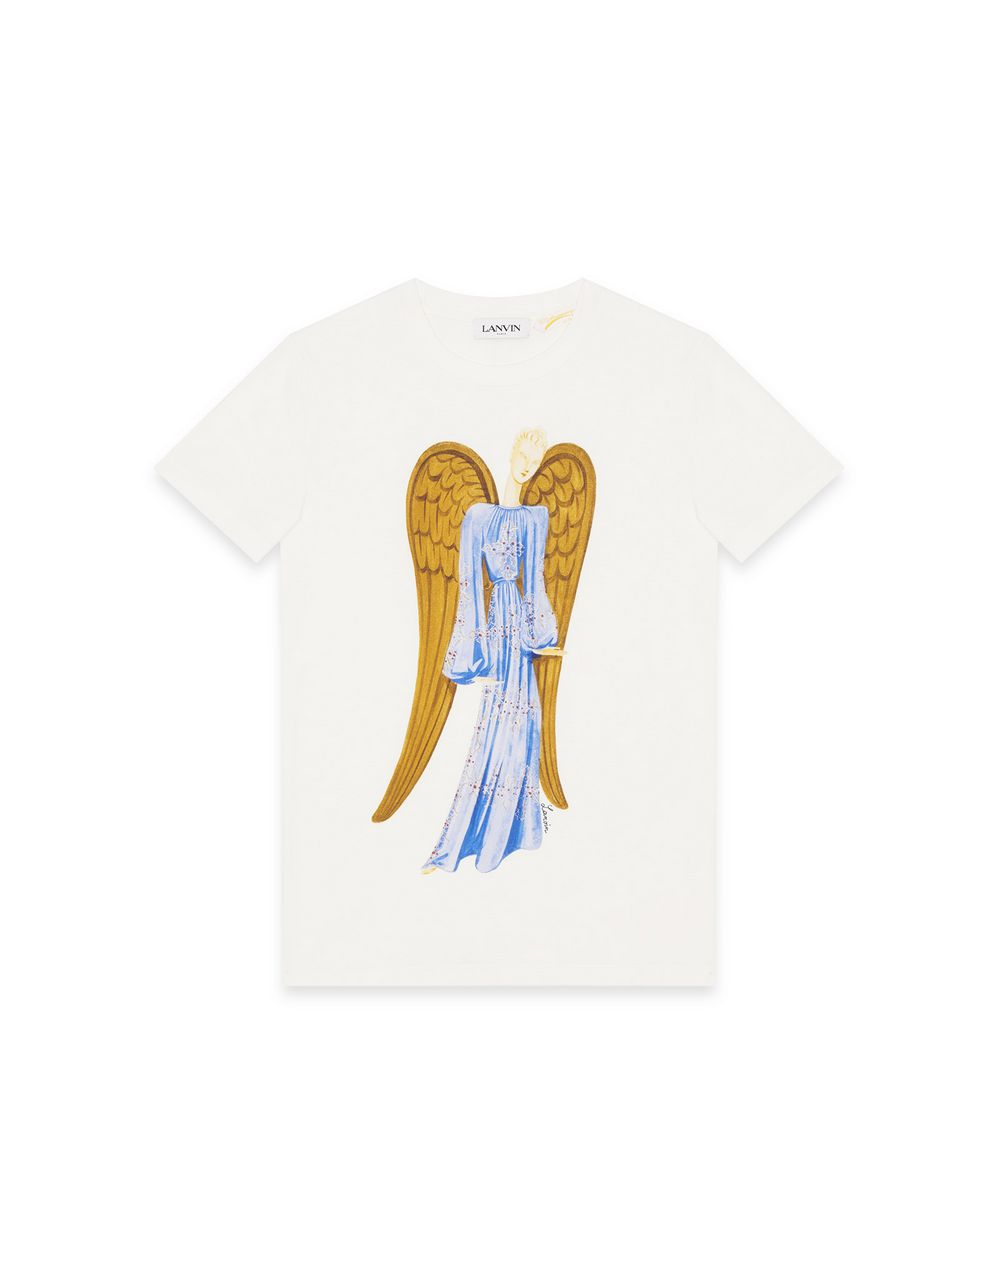 130 YEARS THE ANGEL PRINT T-SHIRT - Lanvin